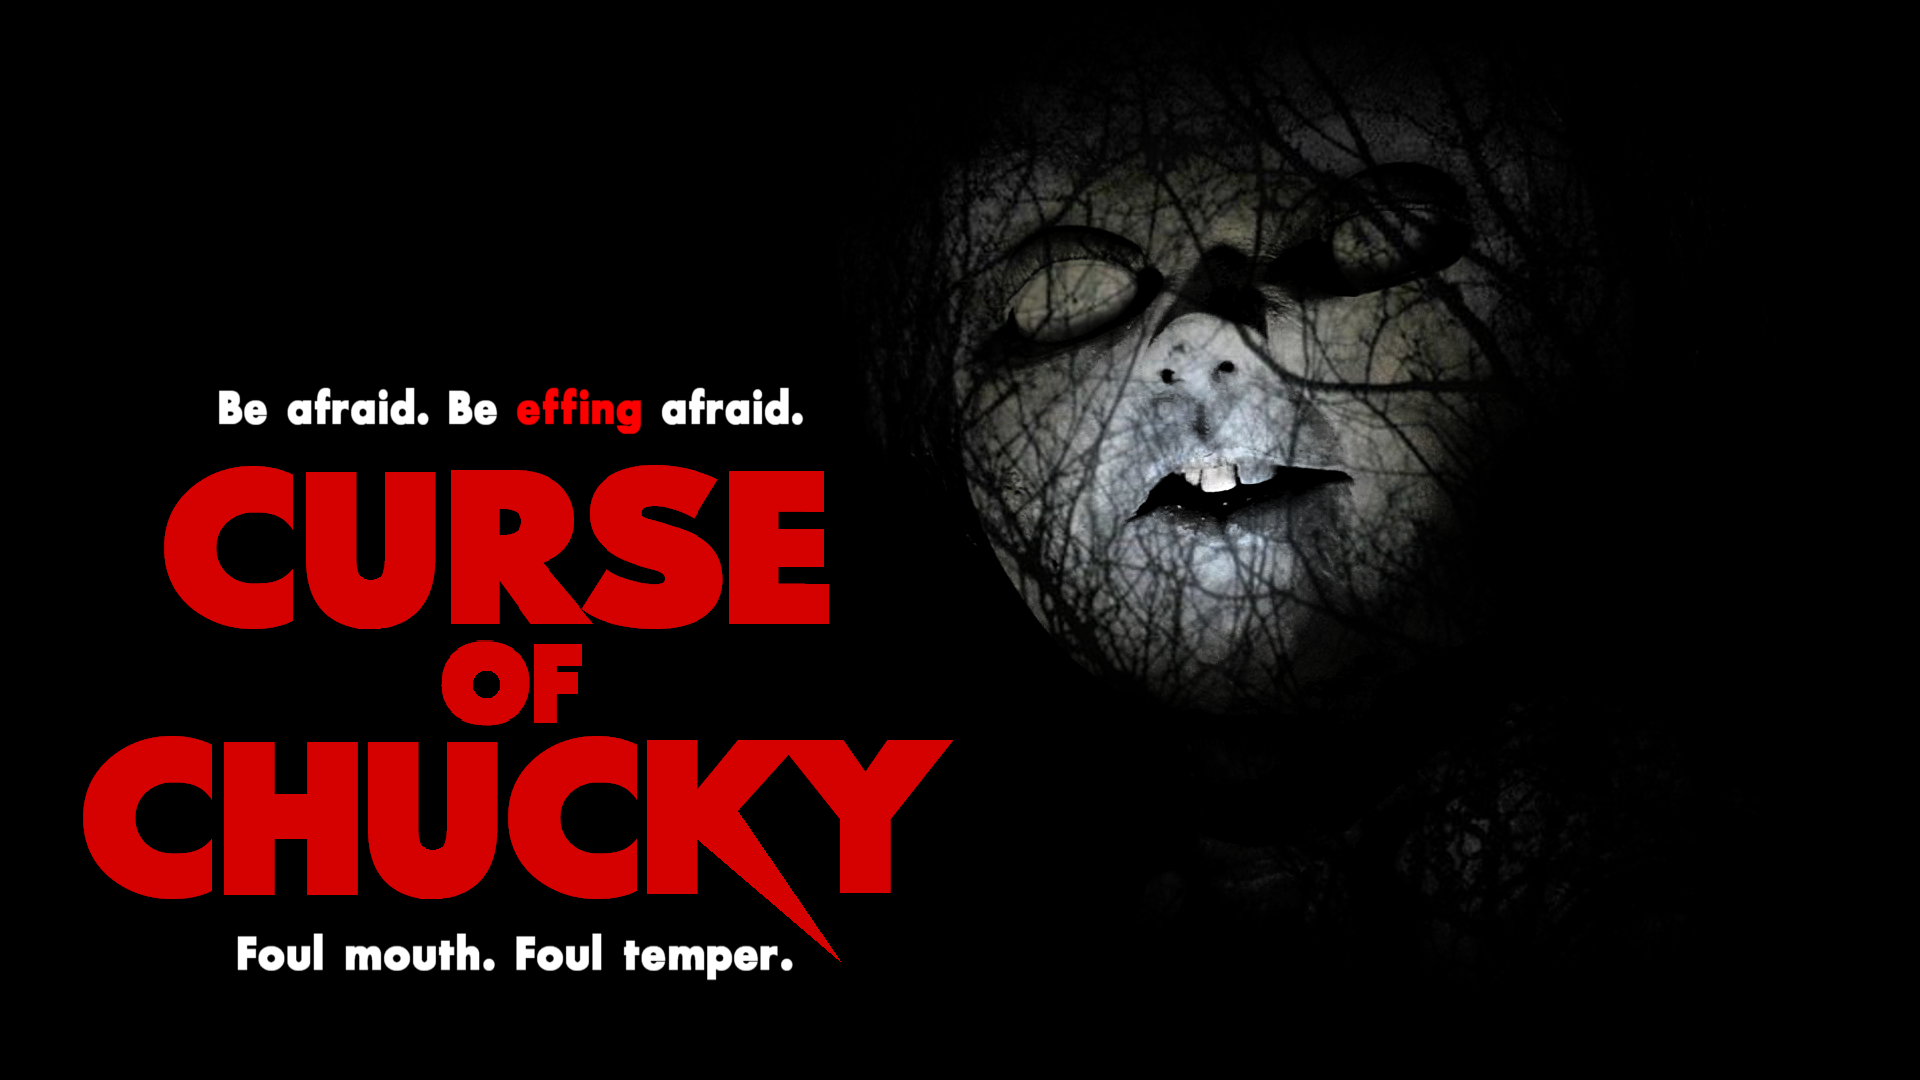 Curse Of Chucky 2013 Poster Images & Pictures - Becuo